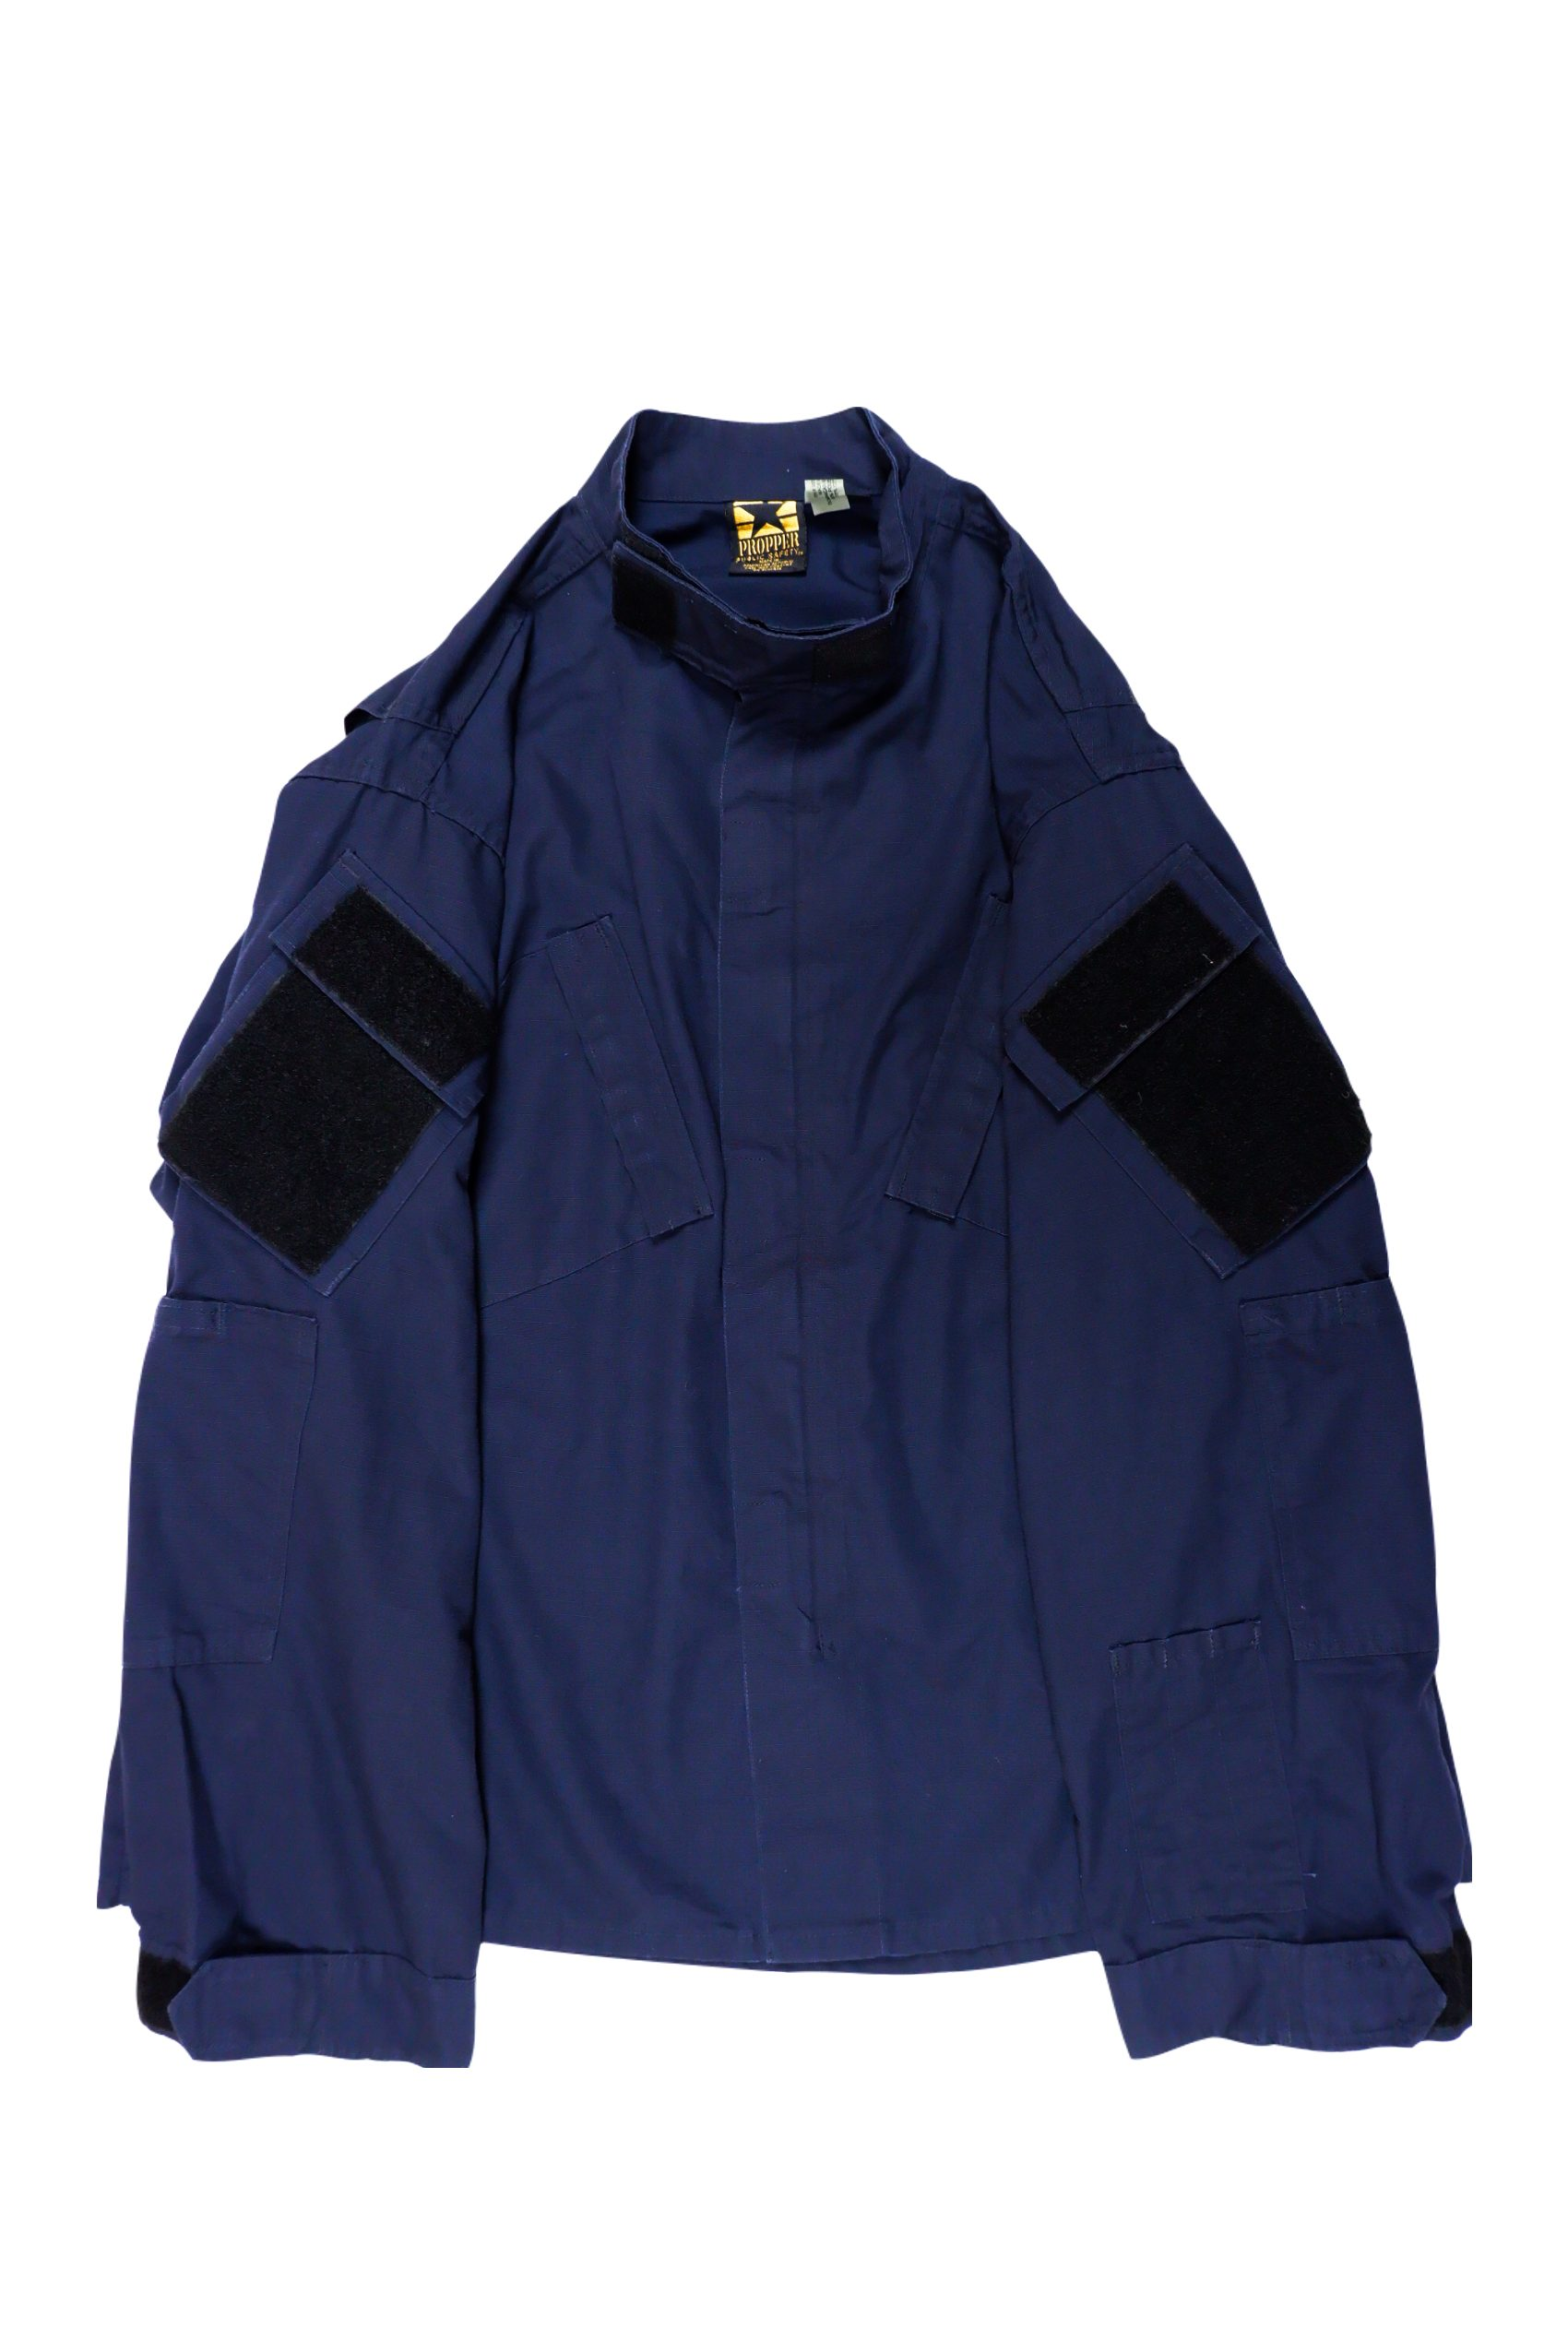 Oversized Rip-stop Military Jacket